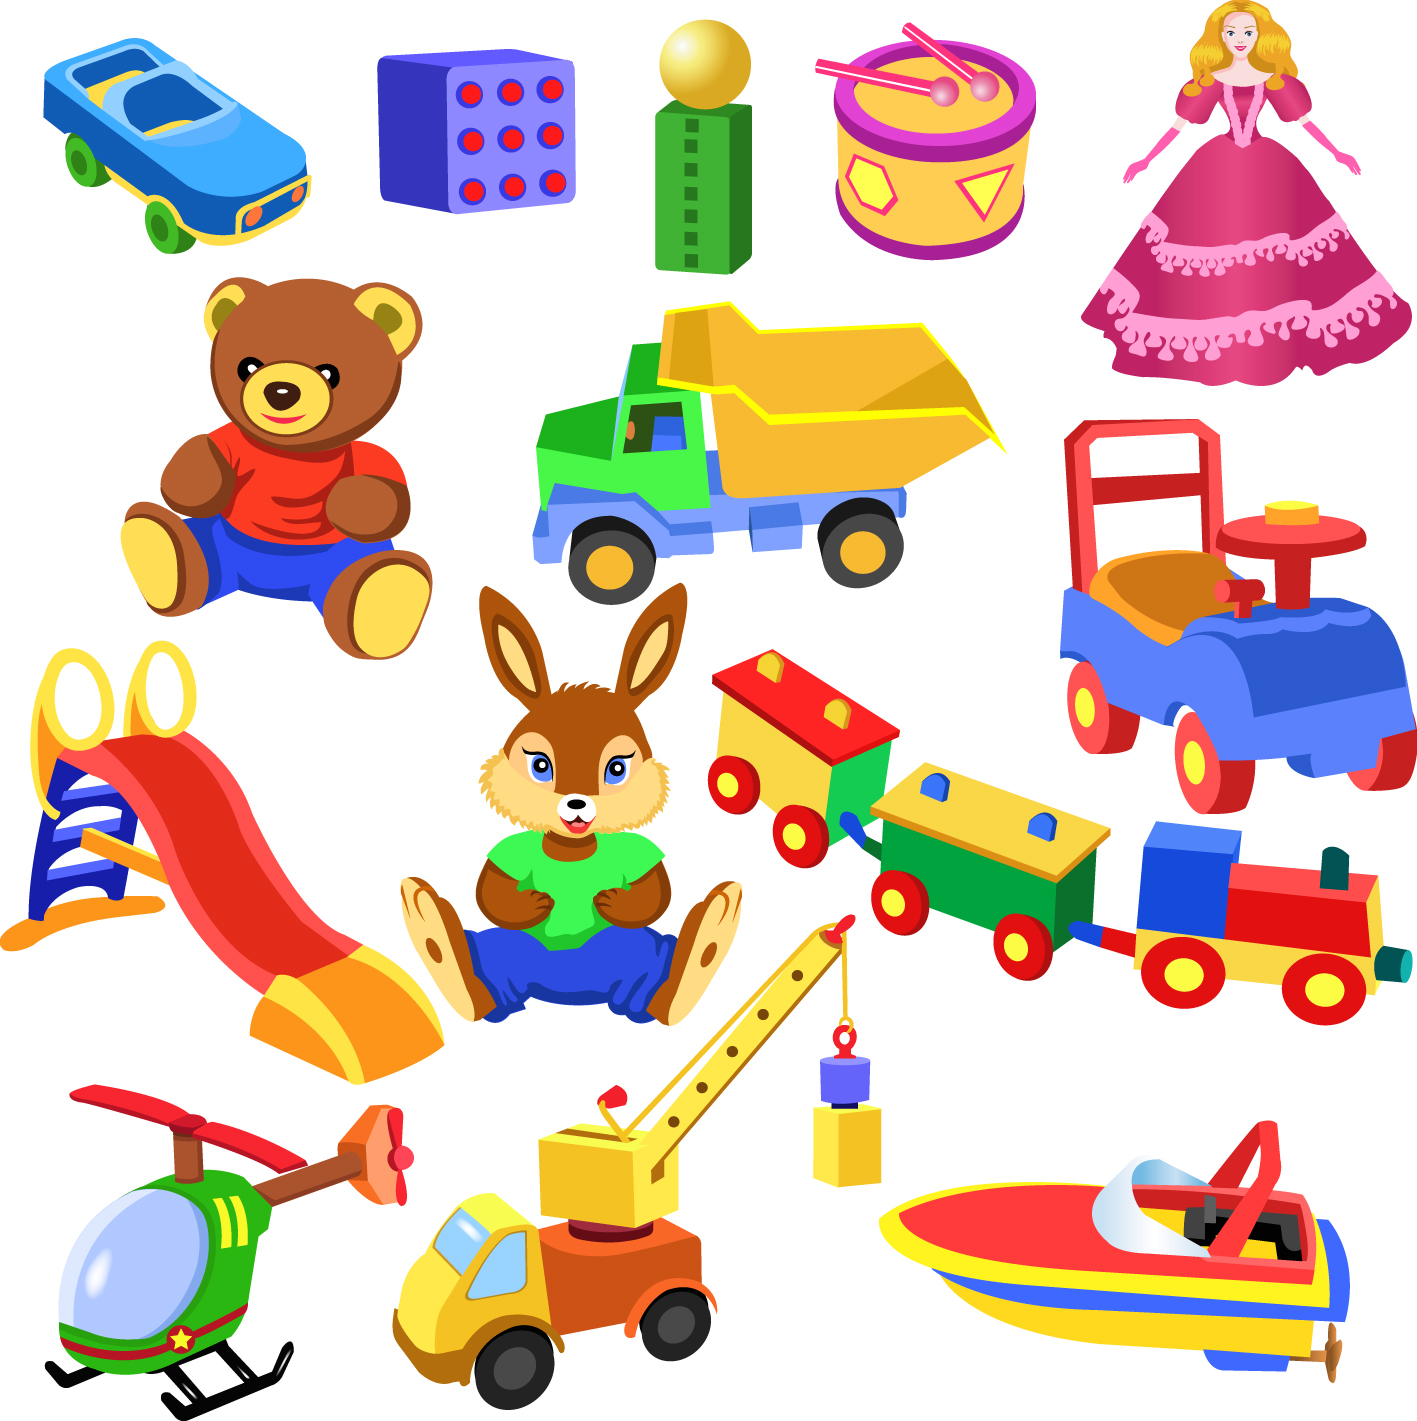 Juguetes clipart image freeuse library Juguetes Para Bebes - Free Clipart image freeuse library